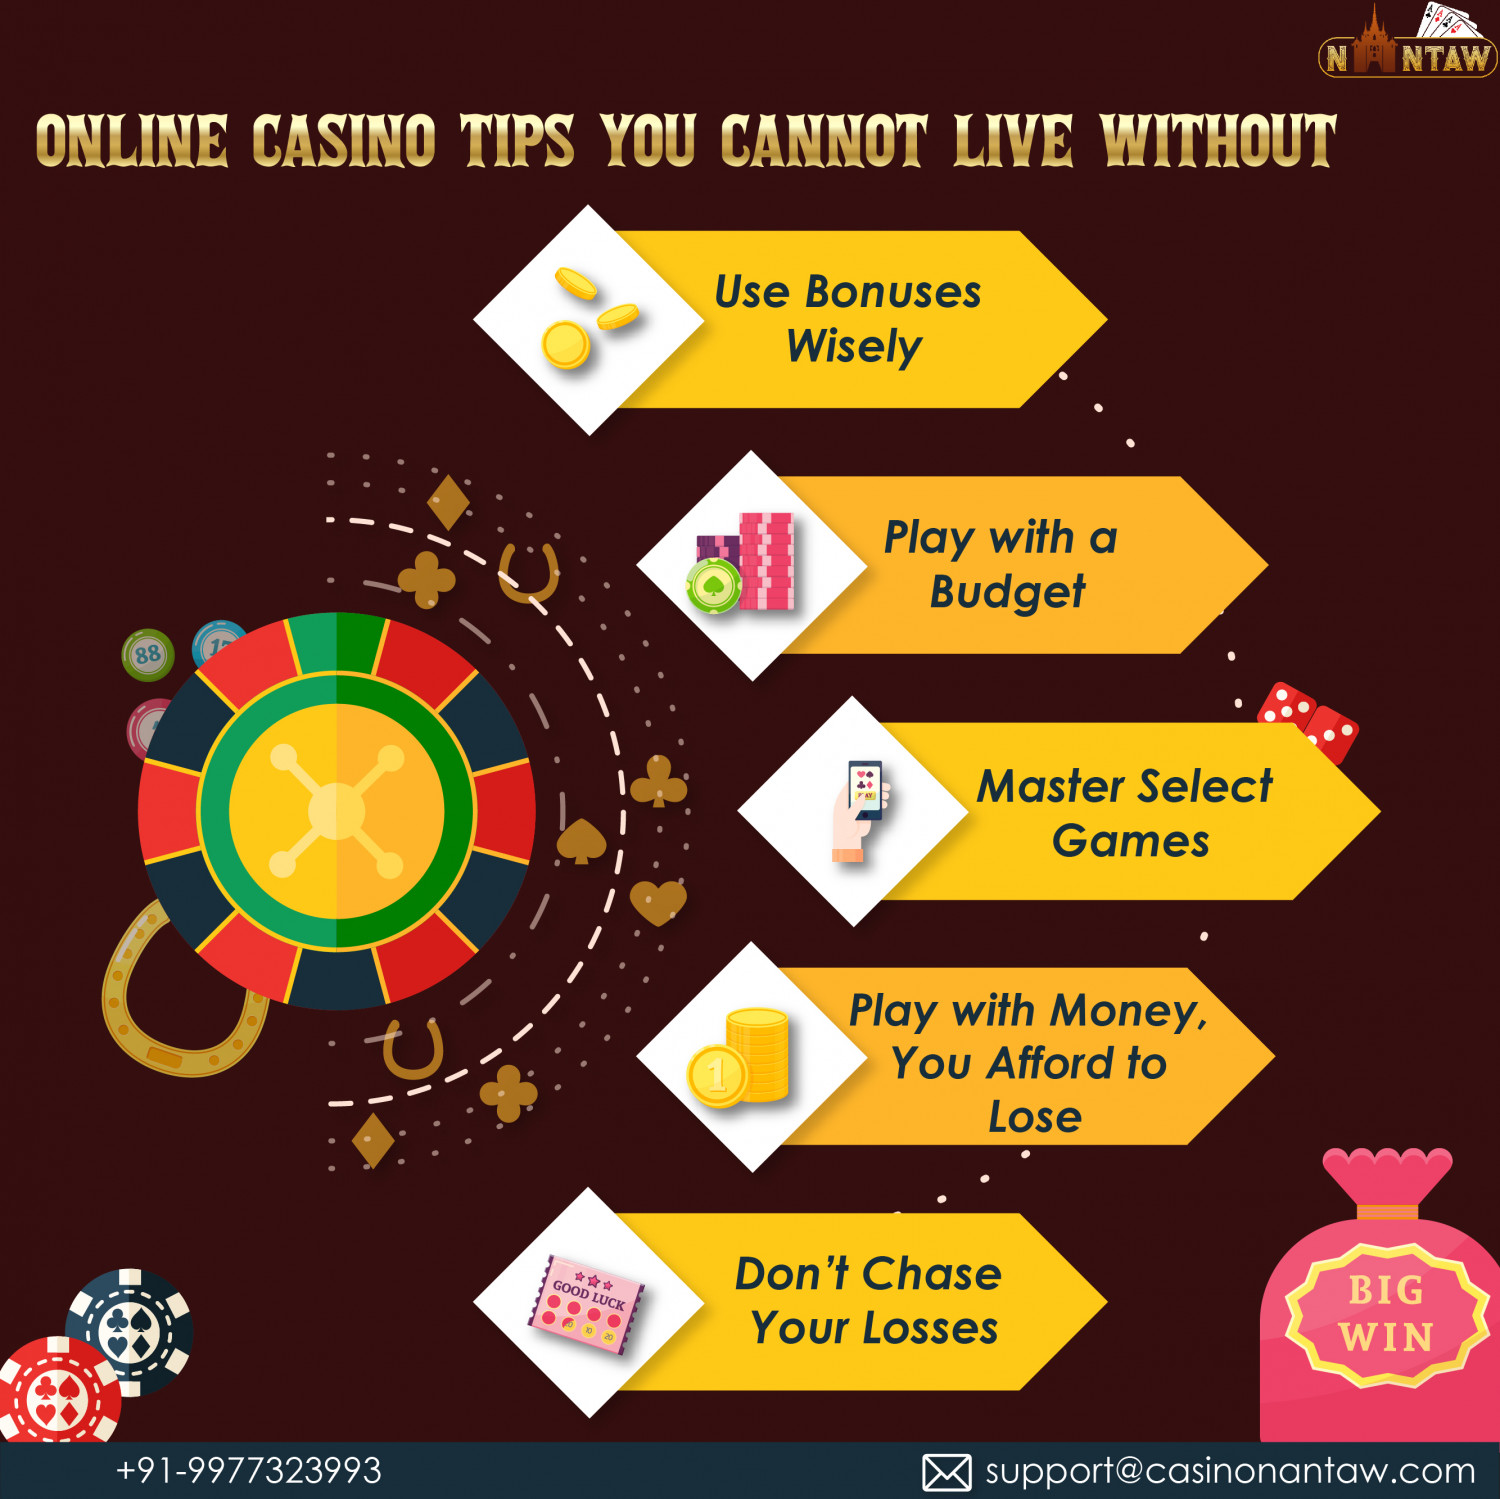 5 Online Casino Tips You Cannot Live Without Infographic